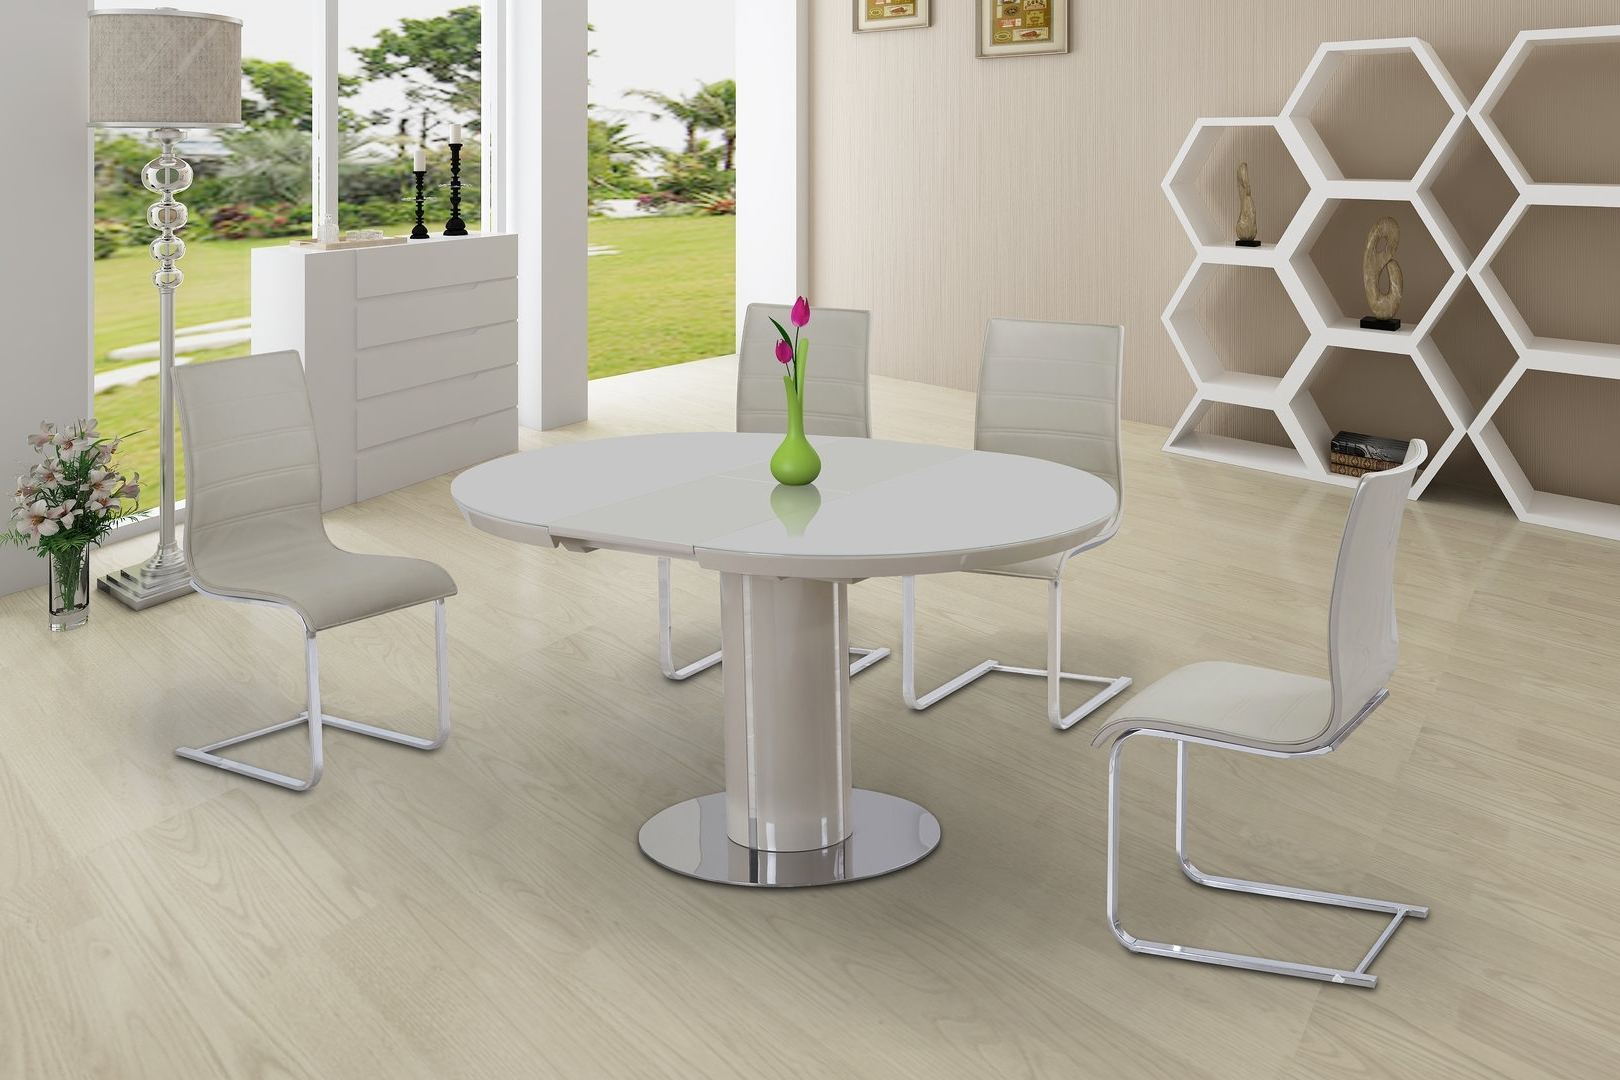 Round Cream Glass High Gloss Dining Table & 4 Chairs – Homegenies Throughout Preferred Cream Gloss Dining Tables And Chairs (View 23 of 25)